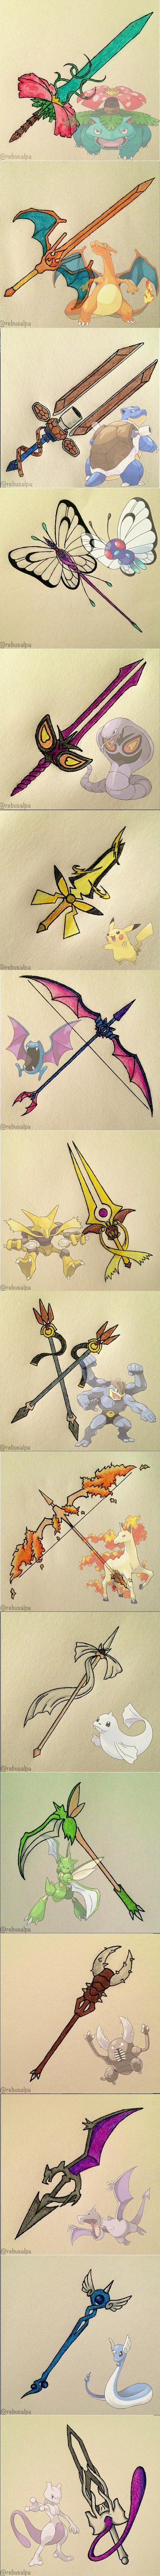 Pokémon Weapon Art